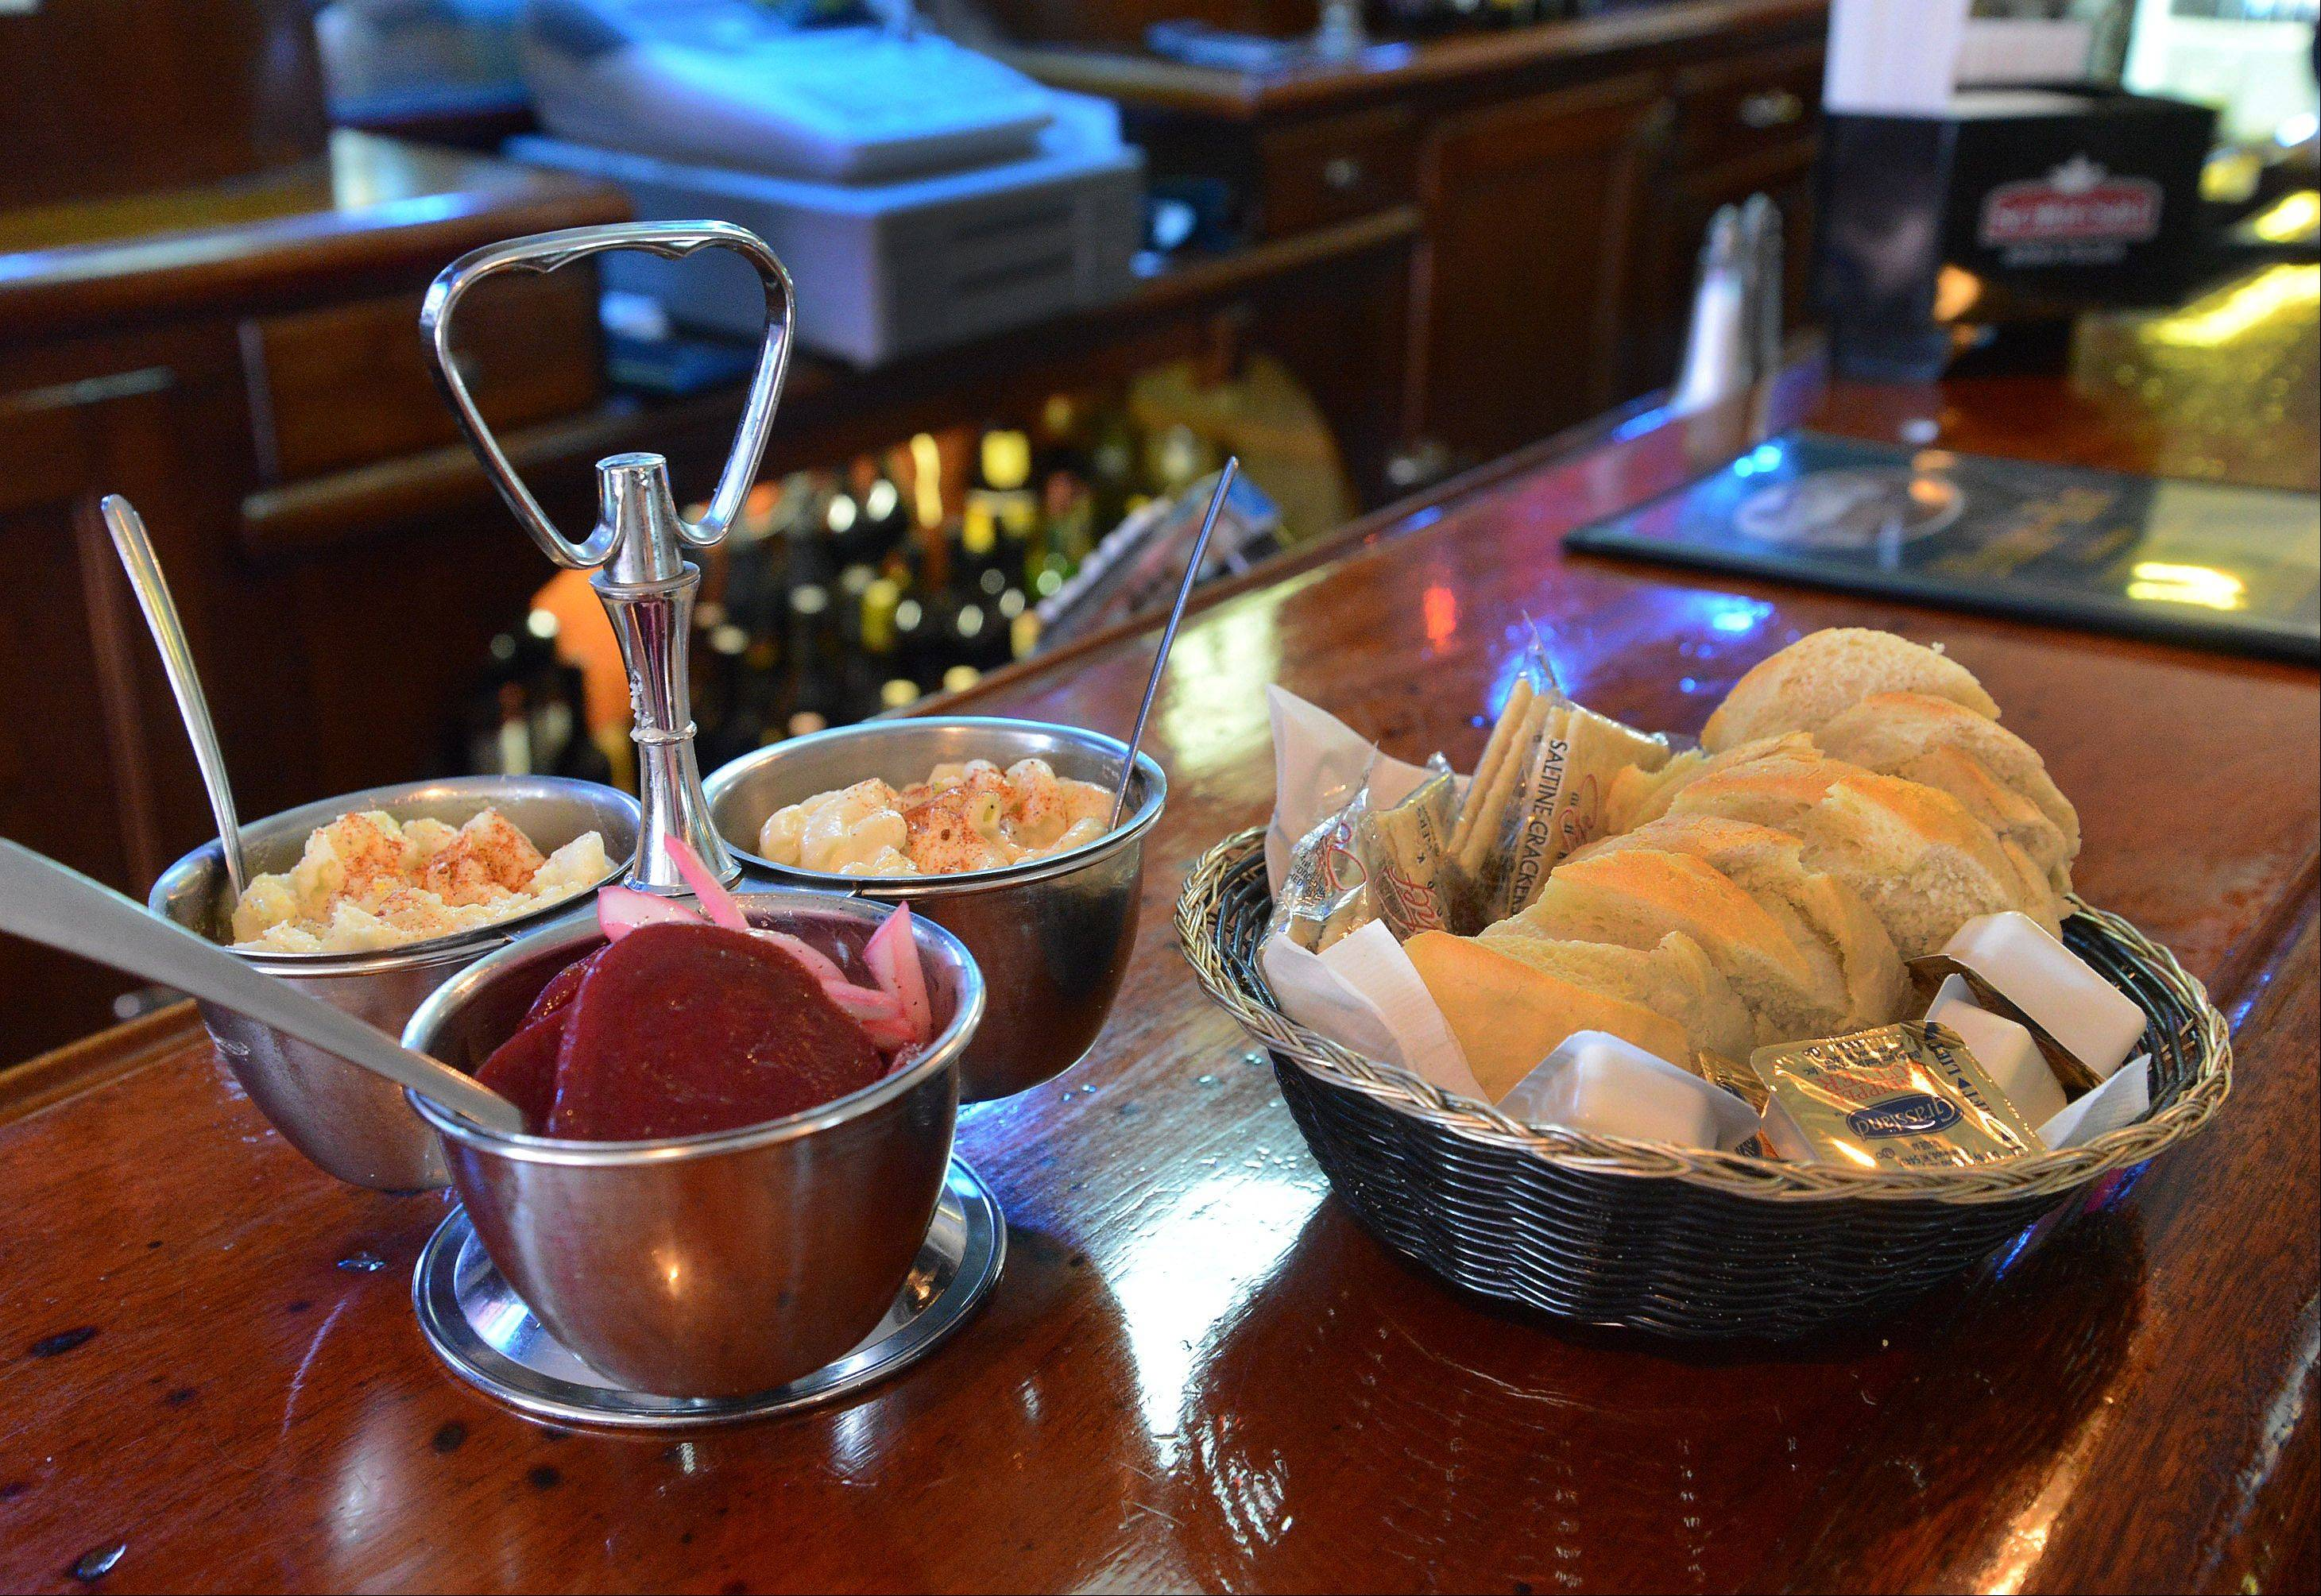 A relish tray starts dinners at Wunder-Bar in Antioch.